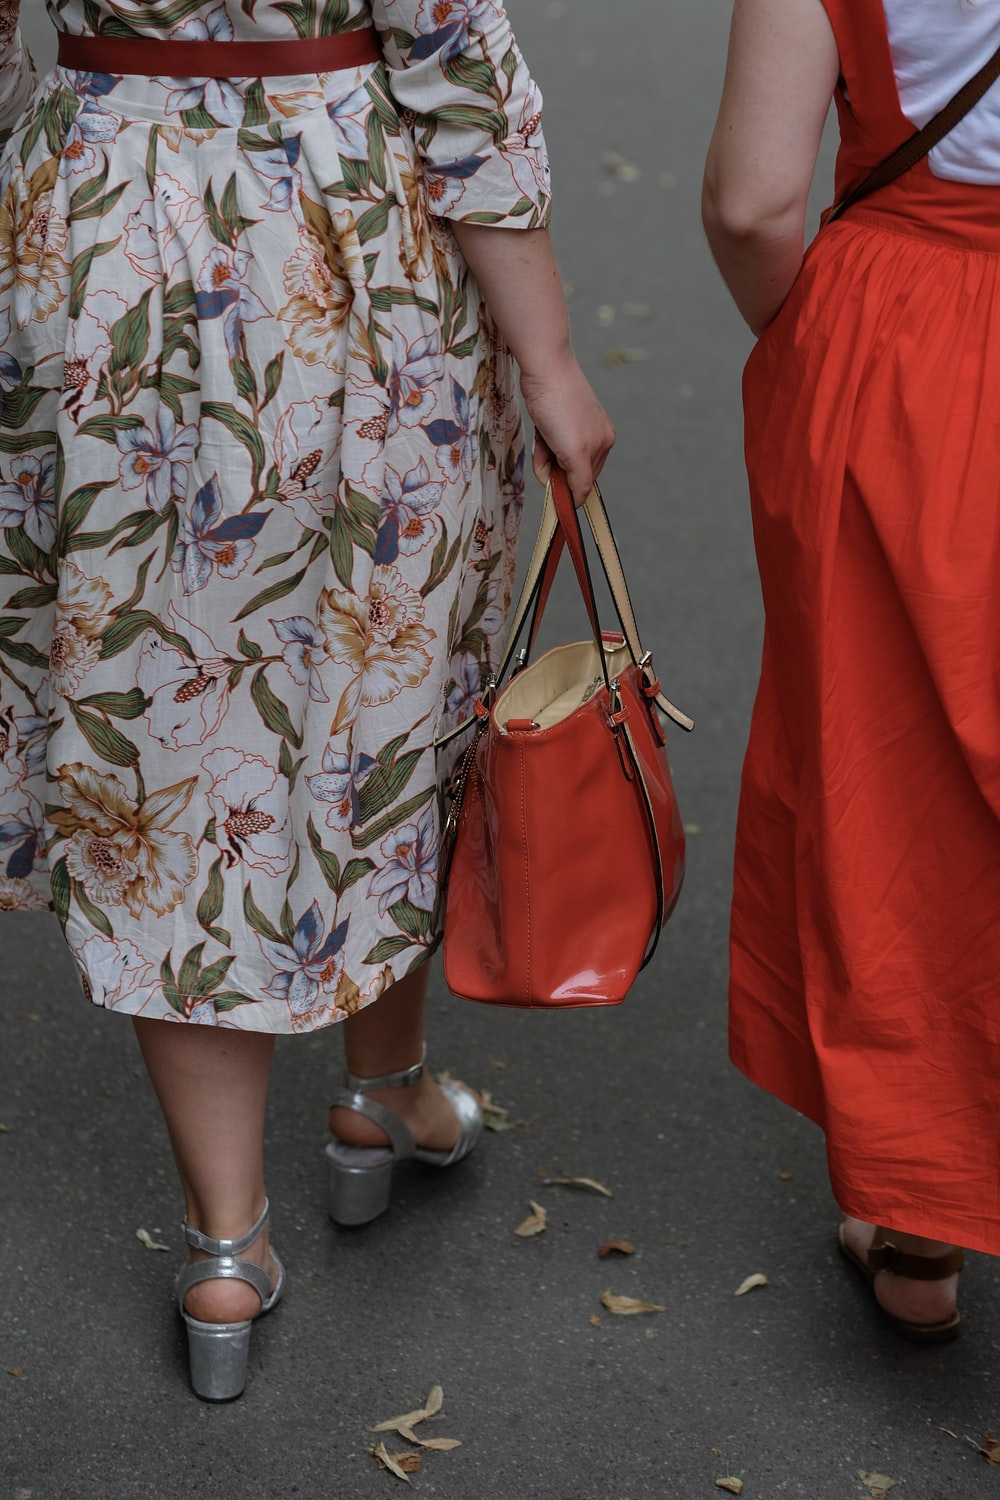 two women's red and white dresses